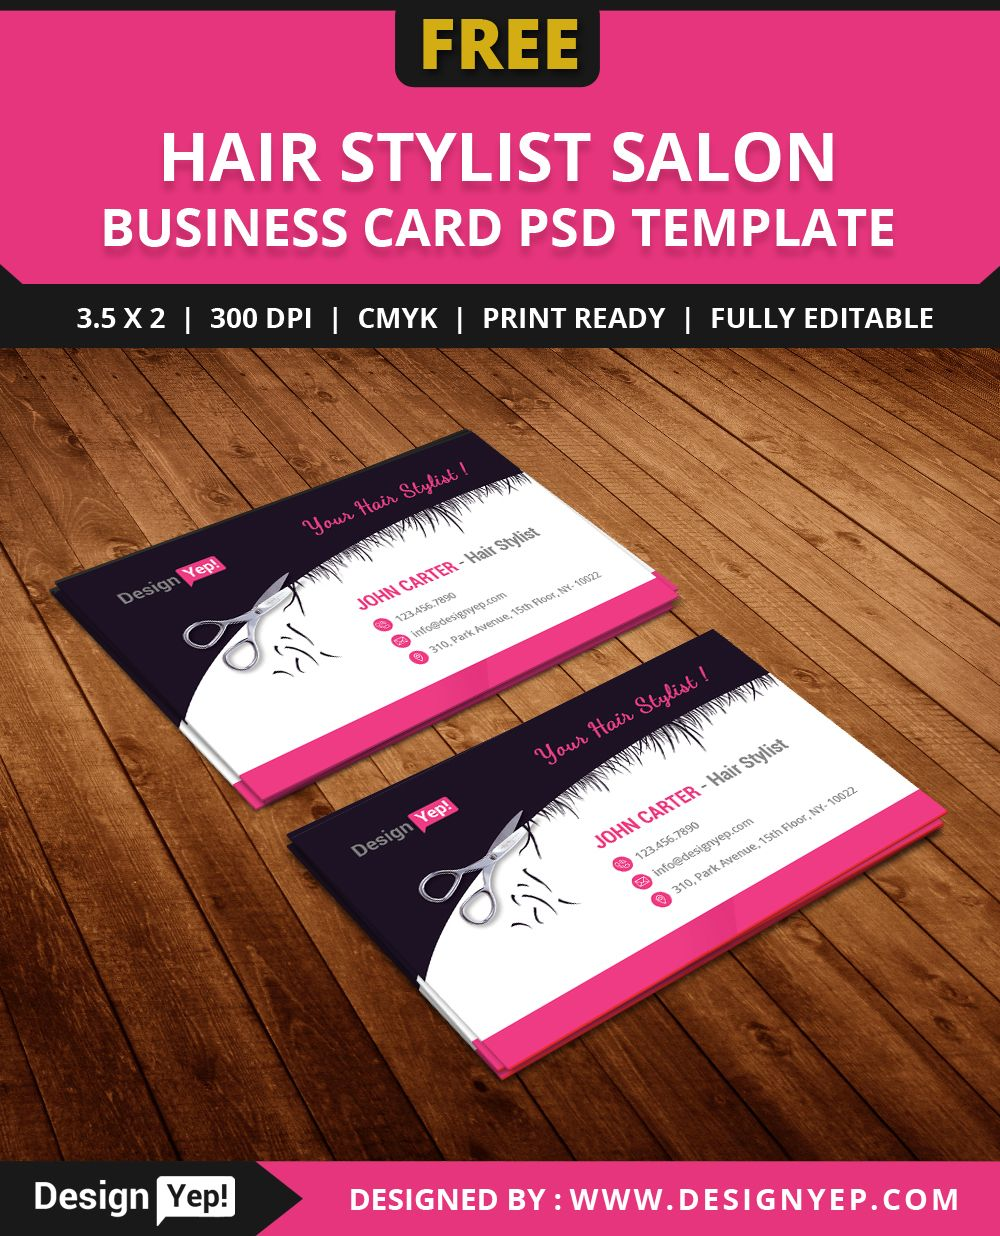 Free hair stylist salon business card template psd free business free hair stylist salon business card template psd fbccfo